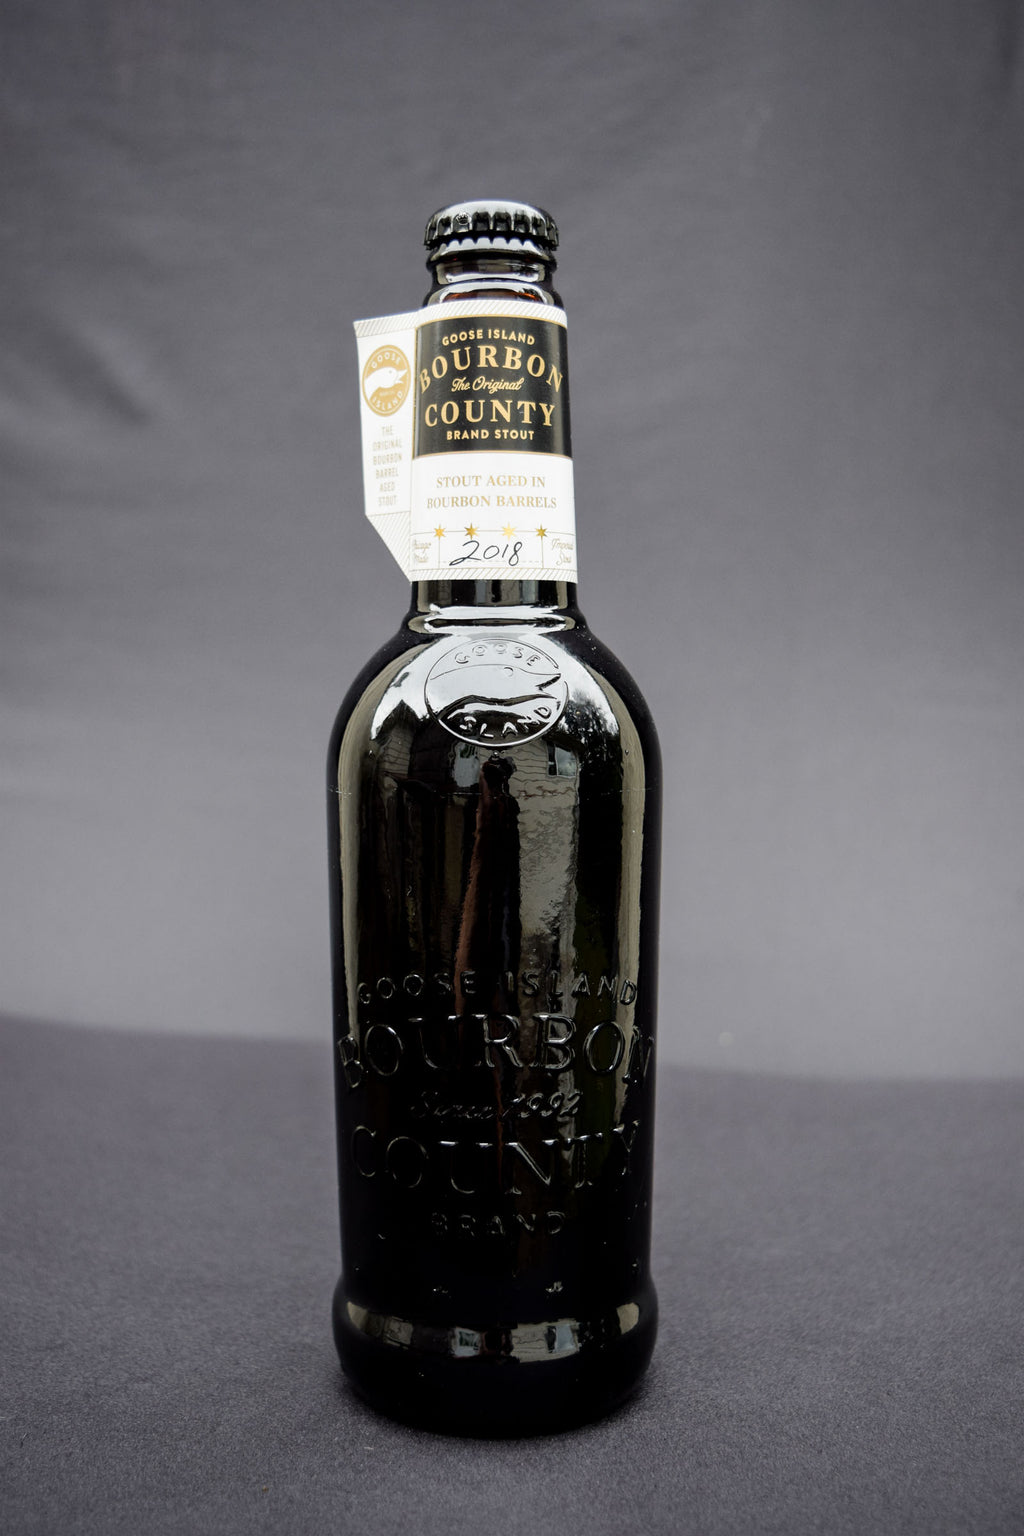 Buy Goose Island Beer Co. Bourbon Country Brand Stout Online